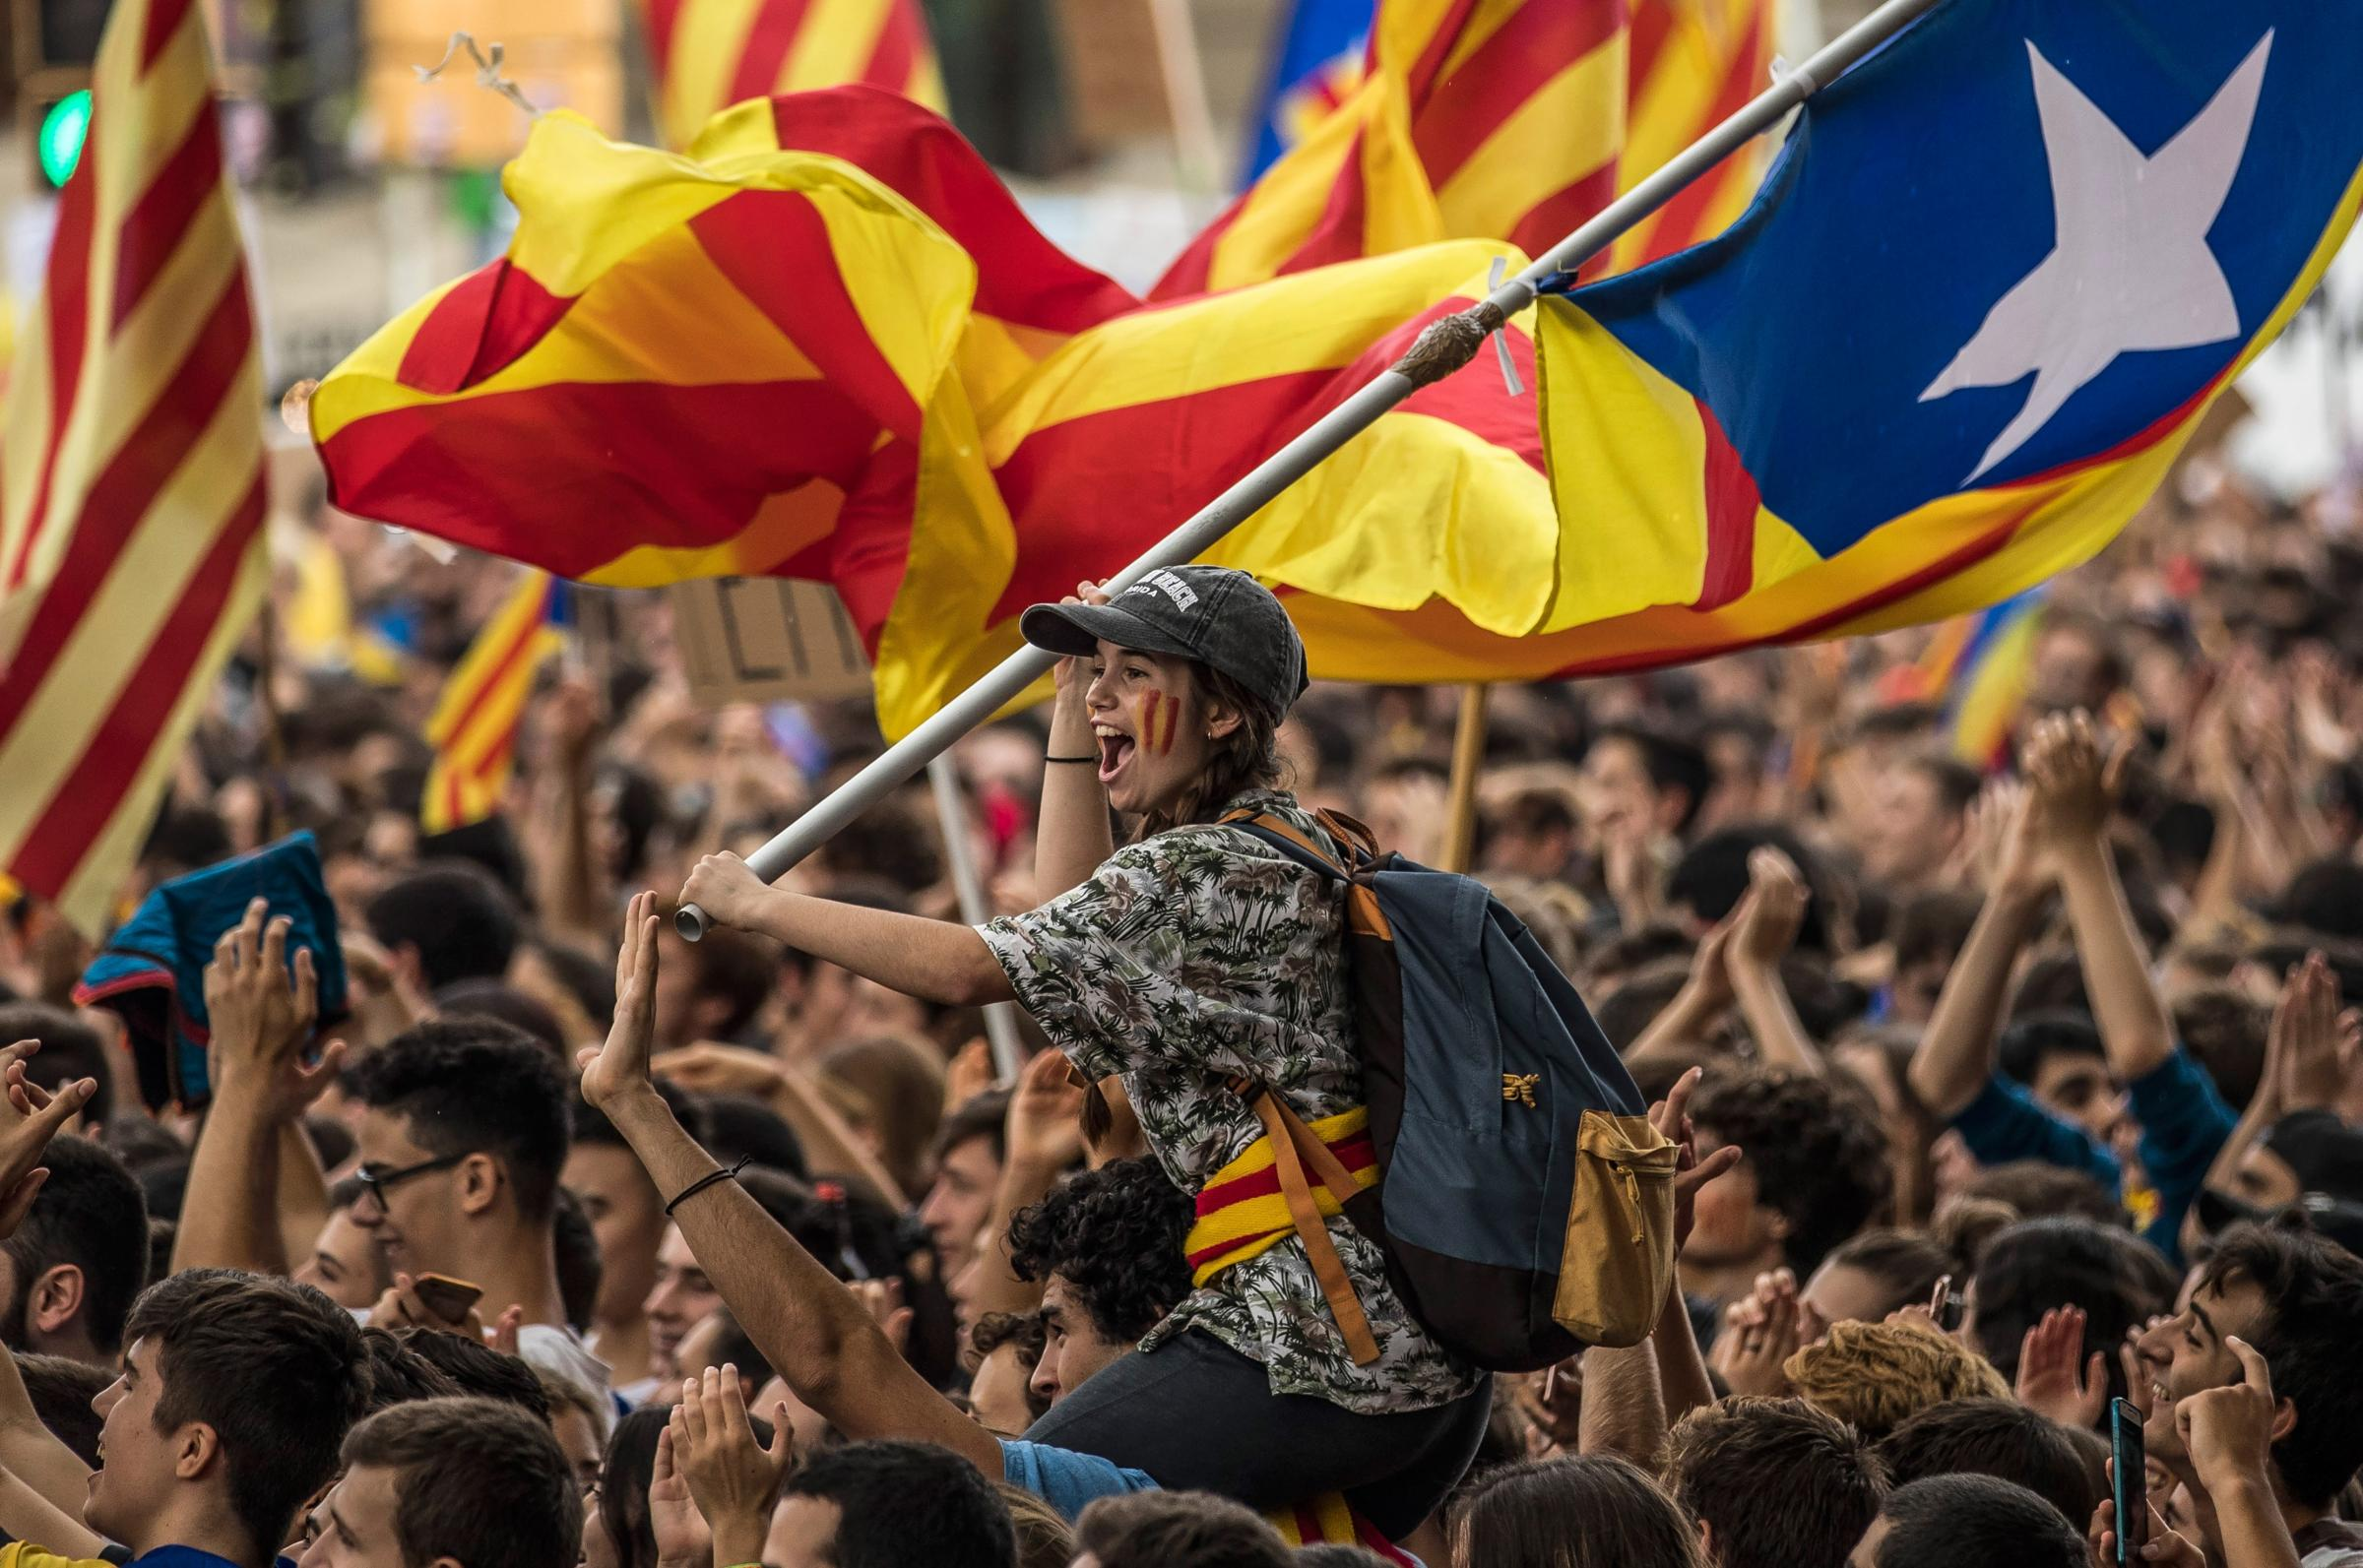 Students demonstrate against the Spanish Government's attempts to stop Catalonia's referendum. Photograph: Dan Kitwood/Getty Images